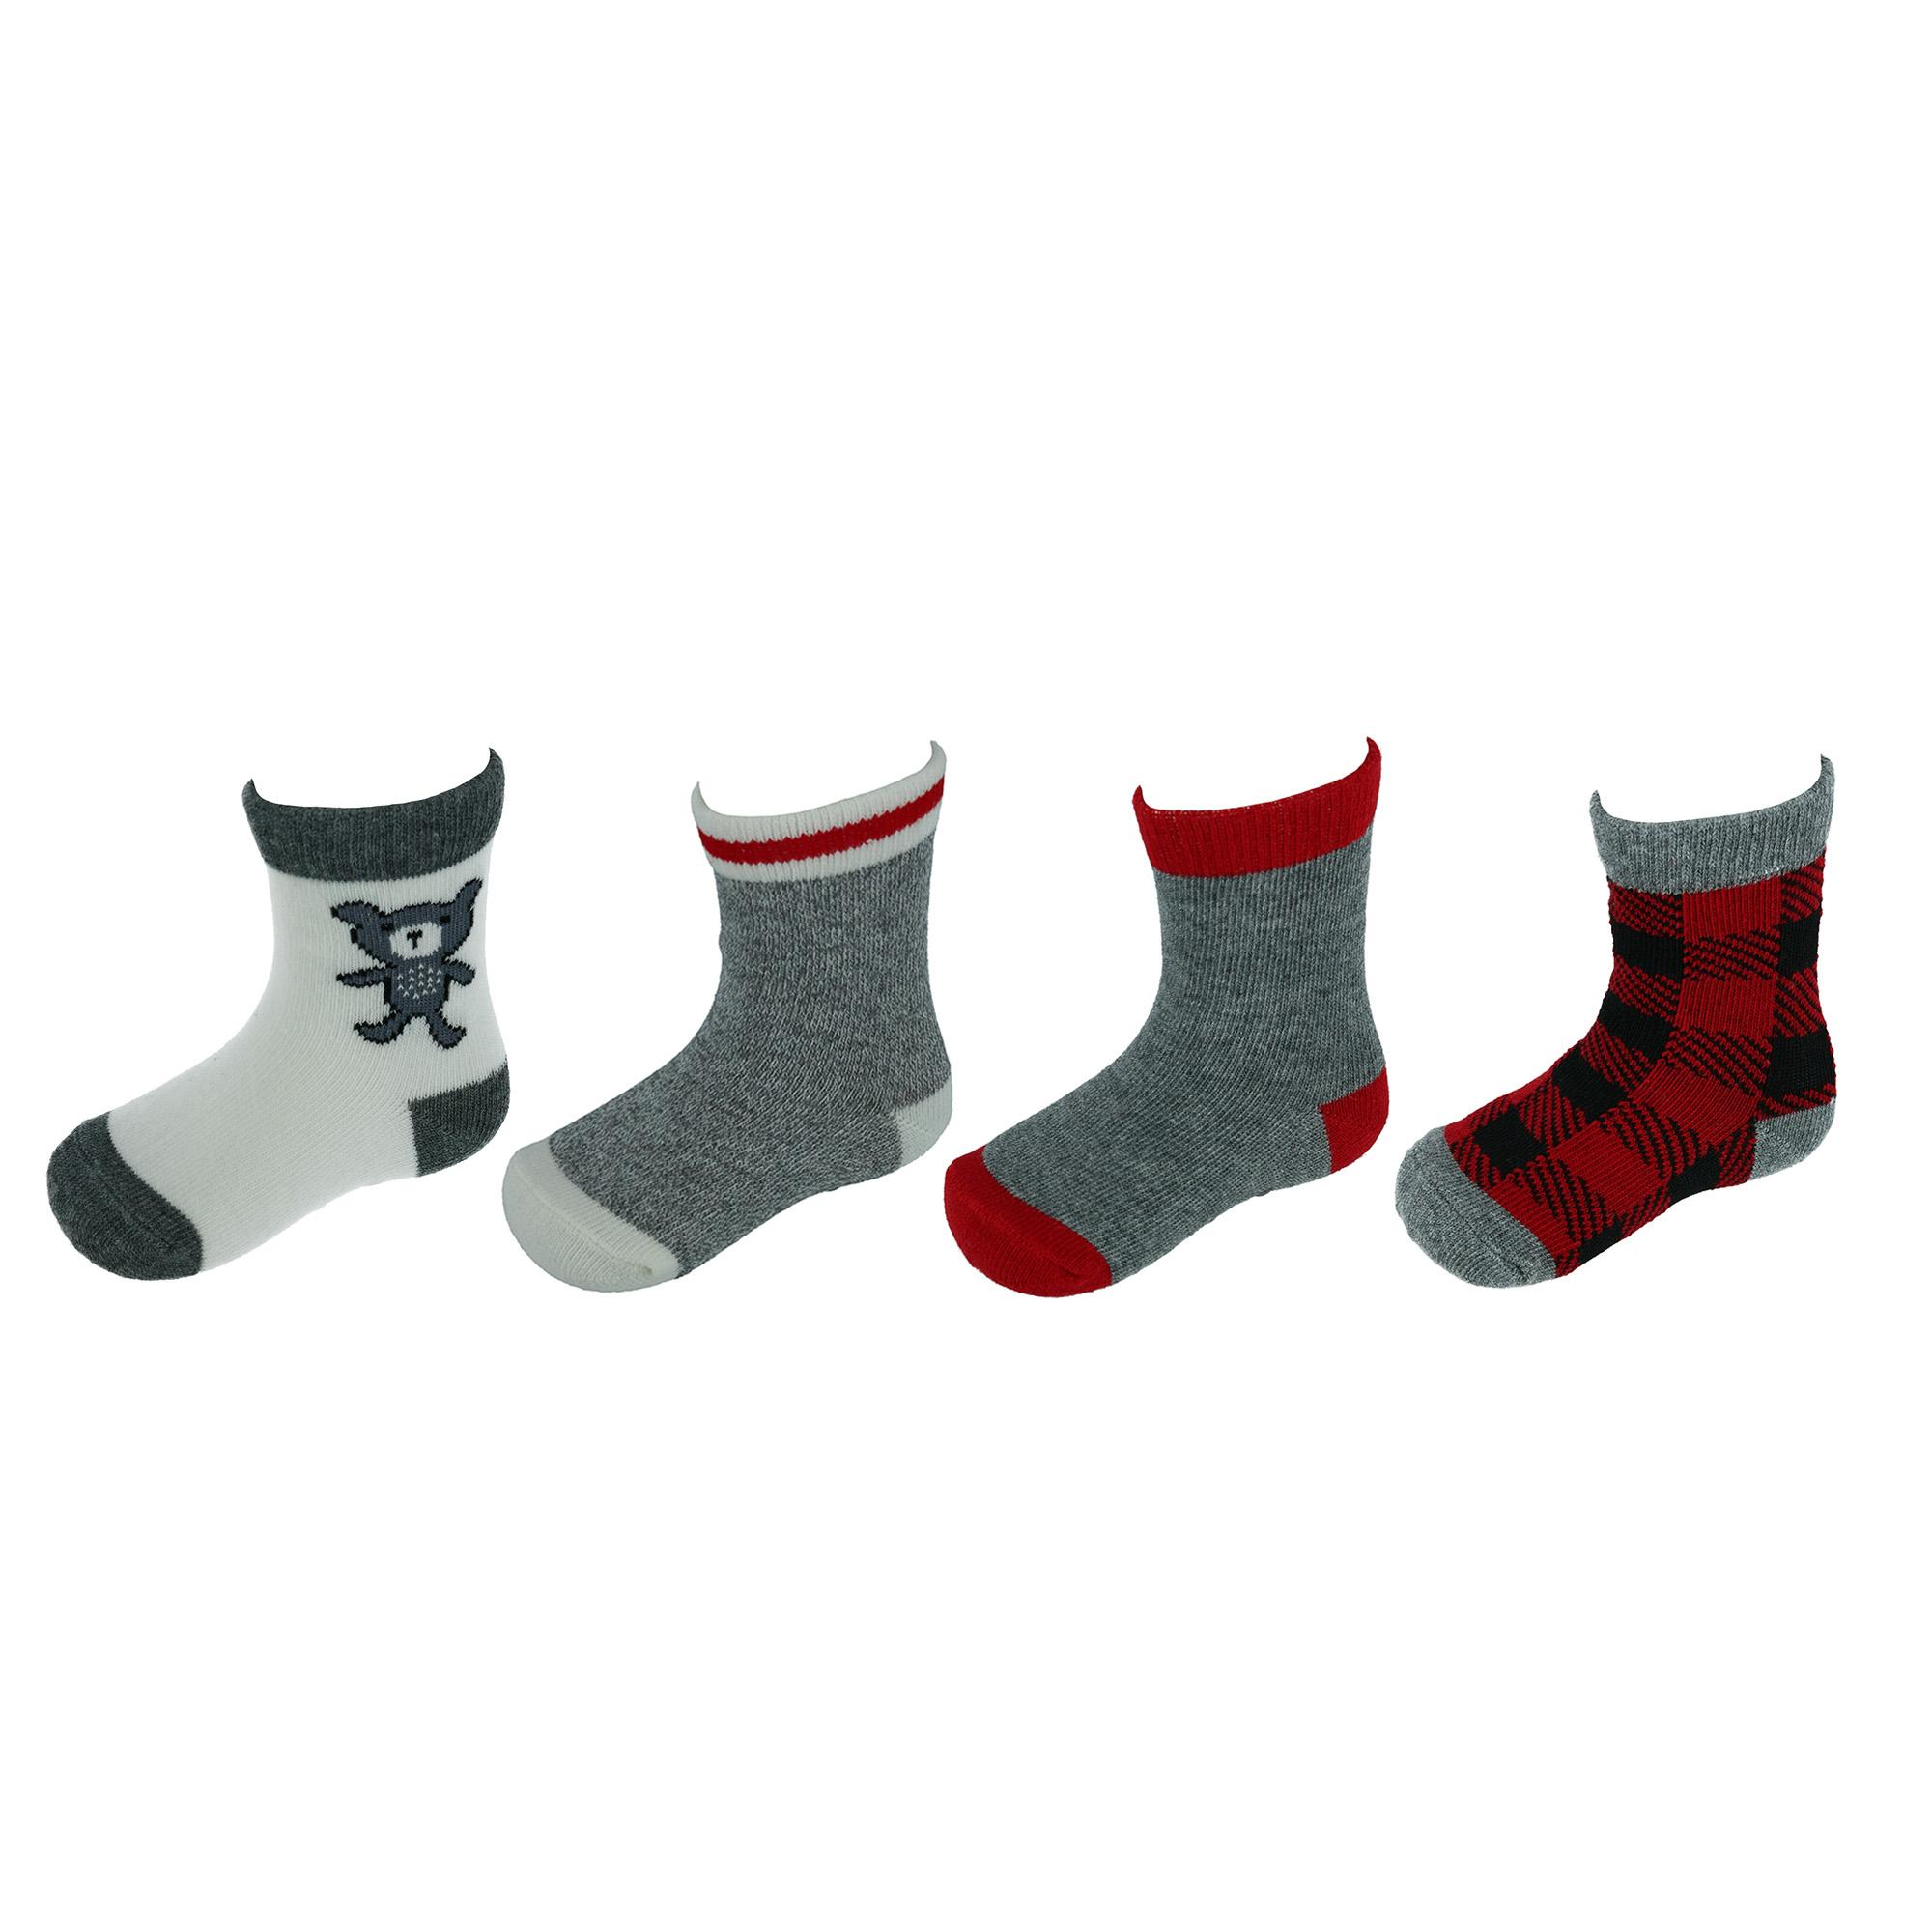 New Kids *6 Pack Super Value* Plain Cotton Mix Back To School Ankle Socks